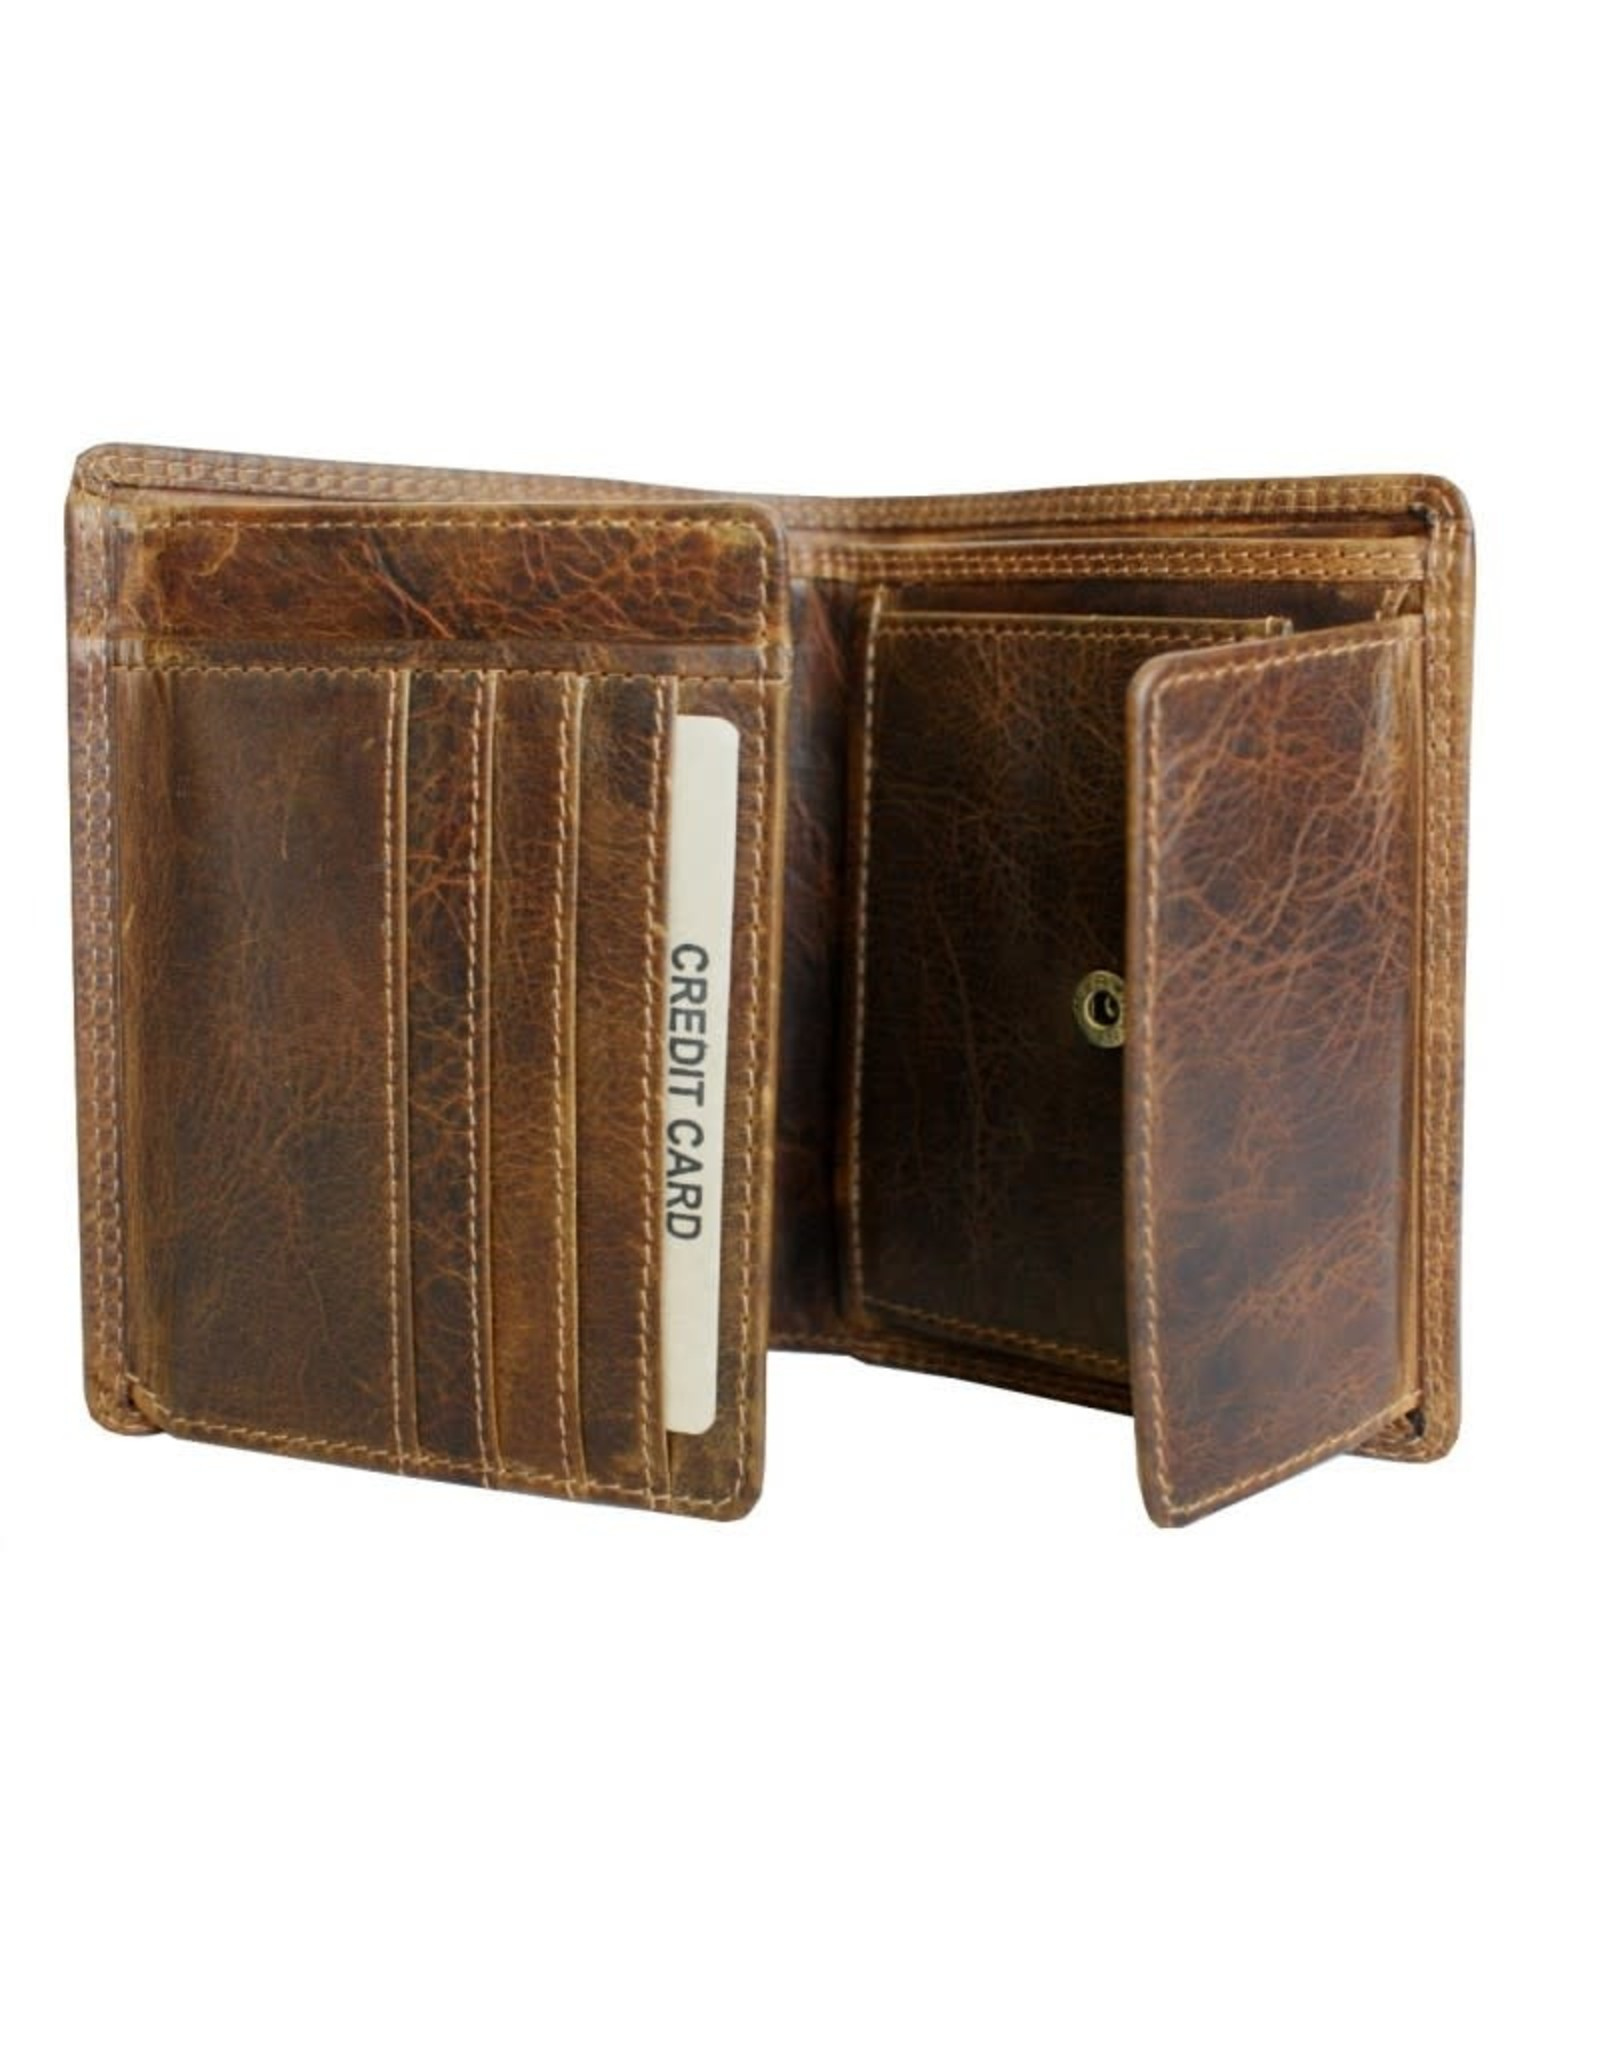 """Rugged Earth Rugged Earth 990005 Wallet Brown W4 1/4""""*H 5""""*D 1"""""""